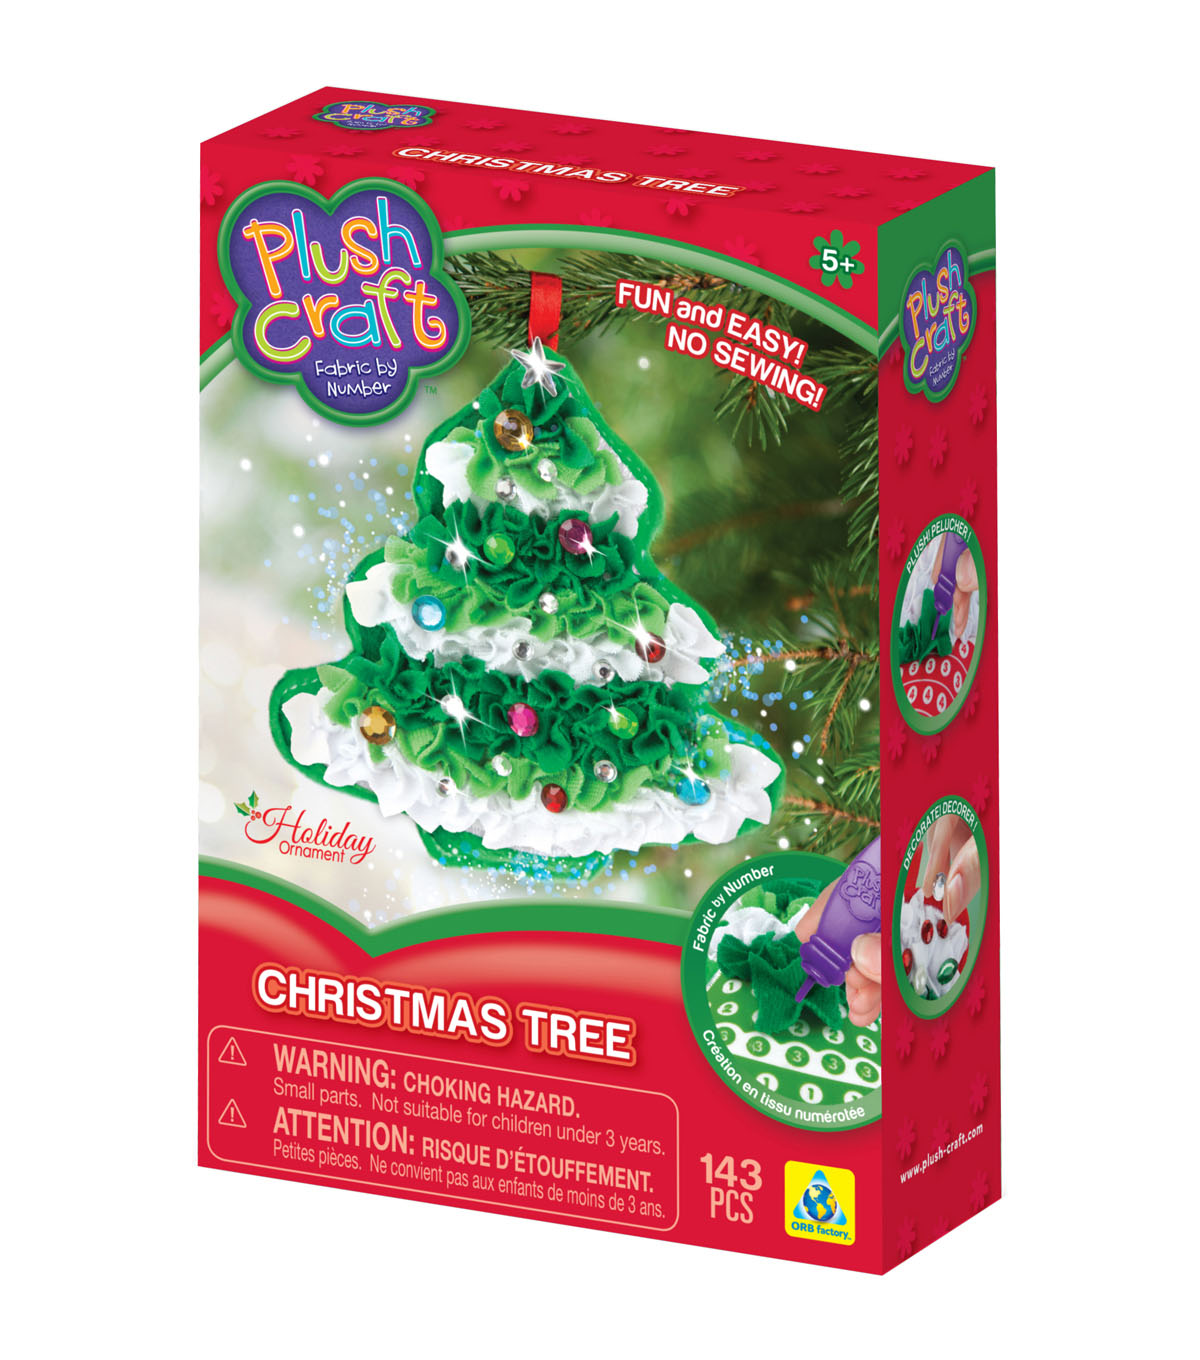 Orb Plush Craft Christmas Tree Ornament Kit